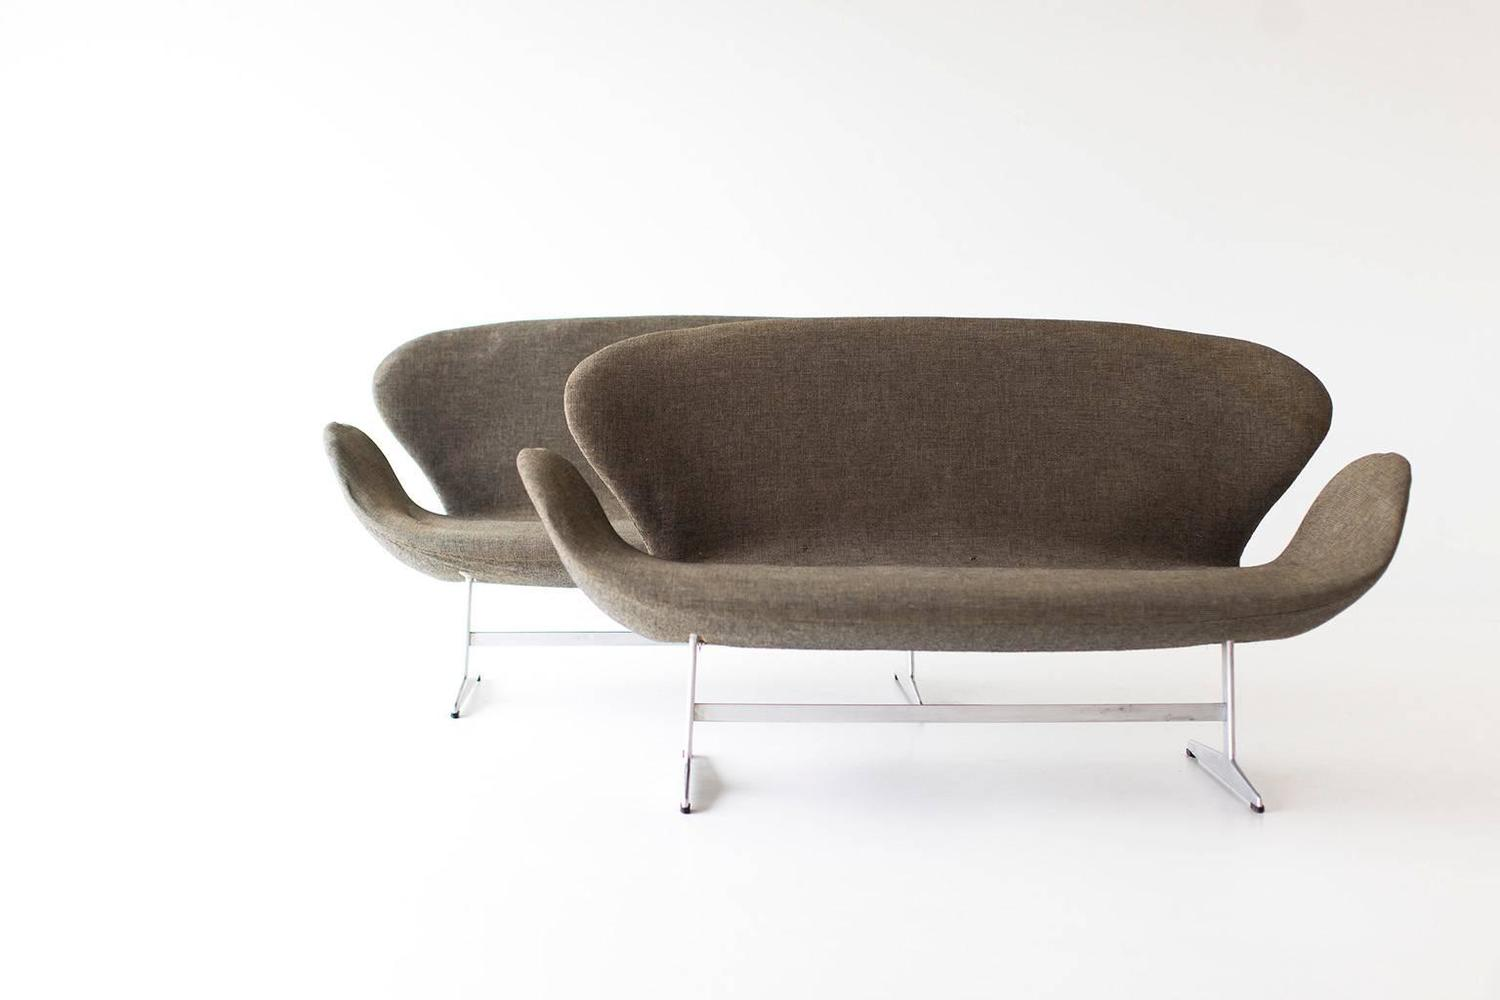 pair of arne jacobsen swan sofas for fritz hansen for sale at 1stdibs. Black Bedroom Furniture Sets. Home Design Ideas